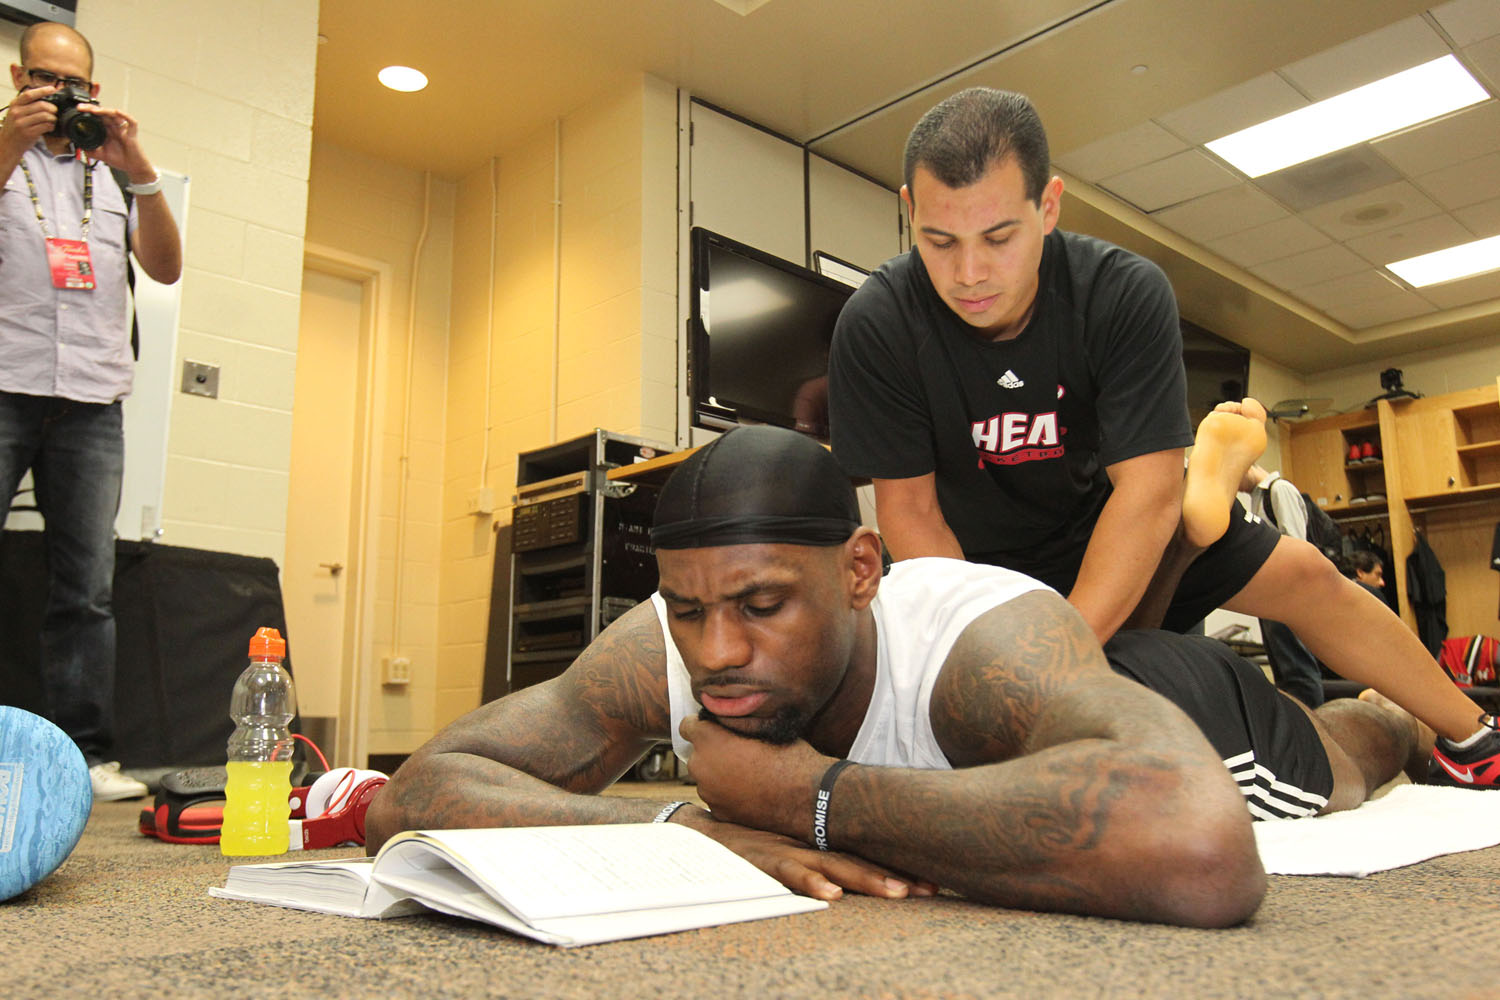 LeBron James gets stretched out in the locker room prior to Game 1 of the 2012 NBA Finals against Oklahoma City Thunder at the Chesapeake Energy Arena on June 12, 2012 in Oklahoma City, Oklahoma.